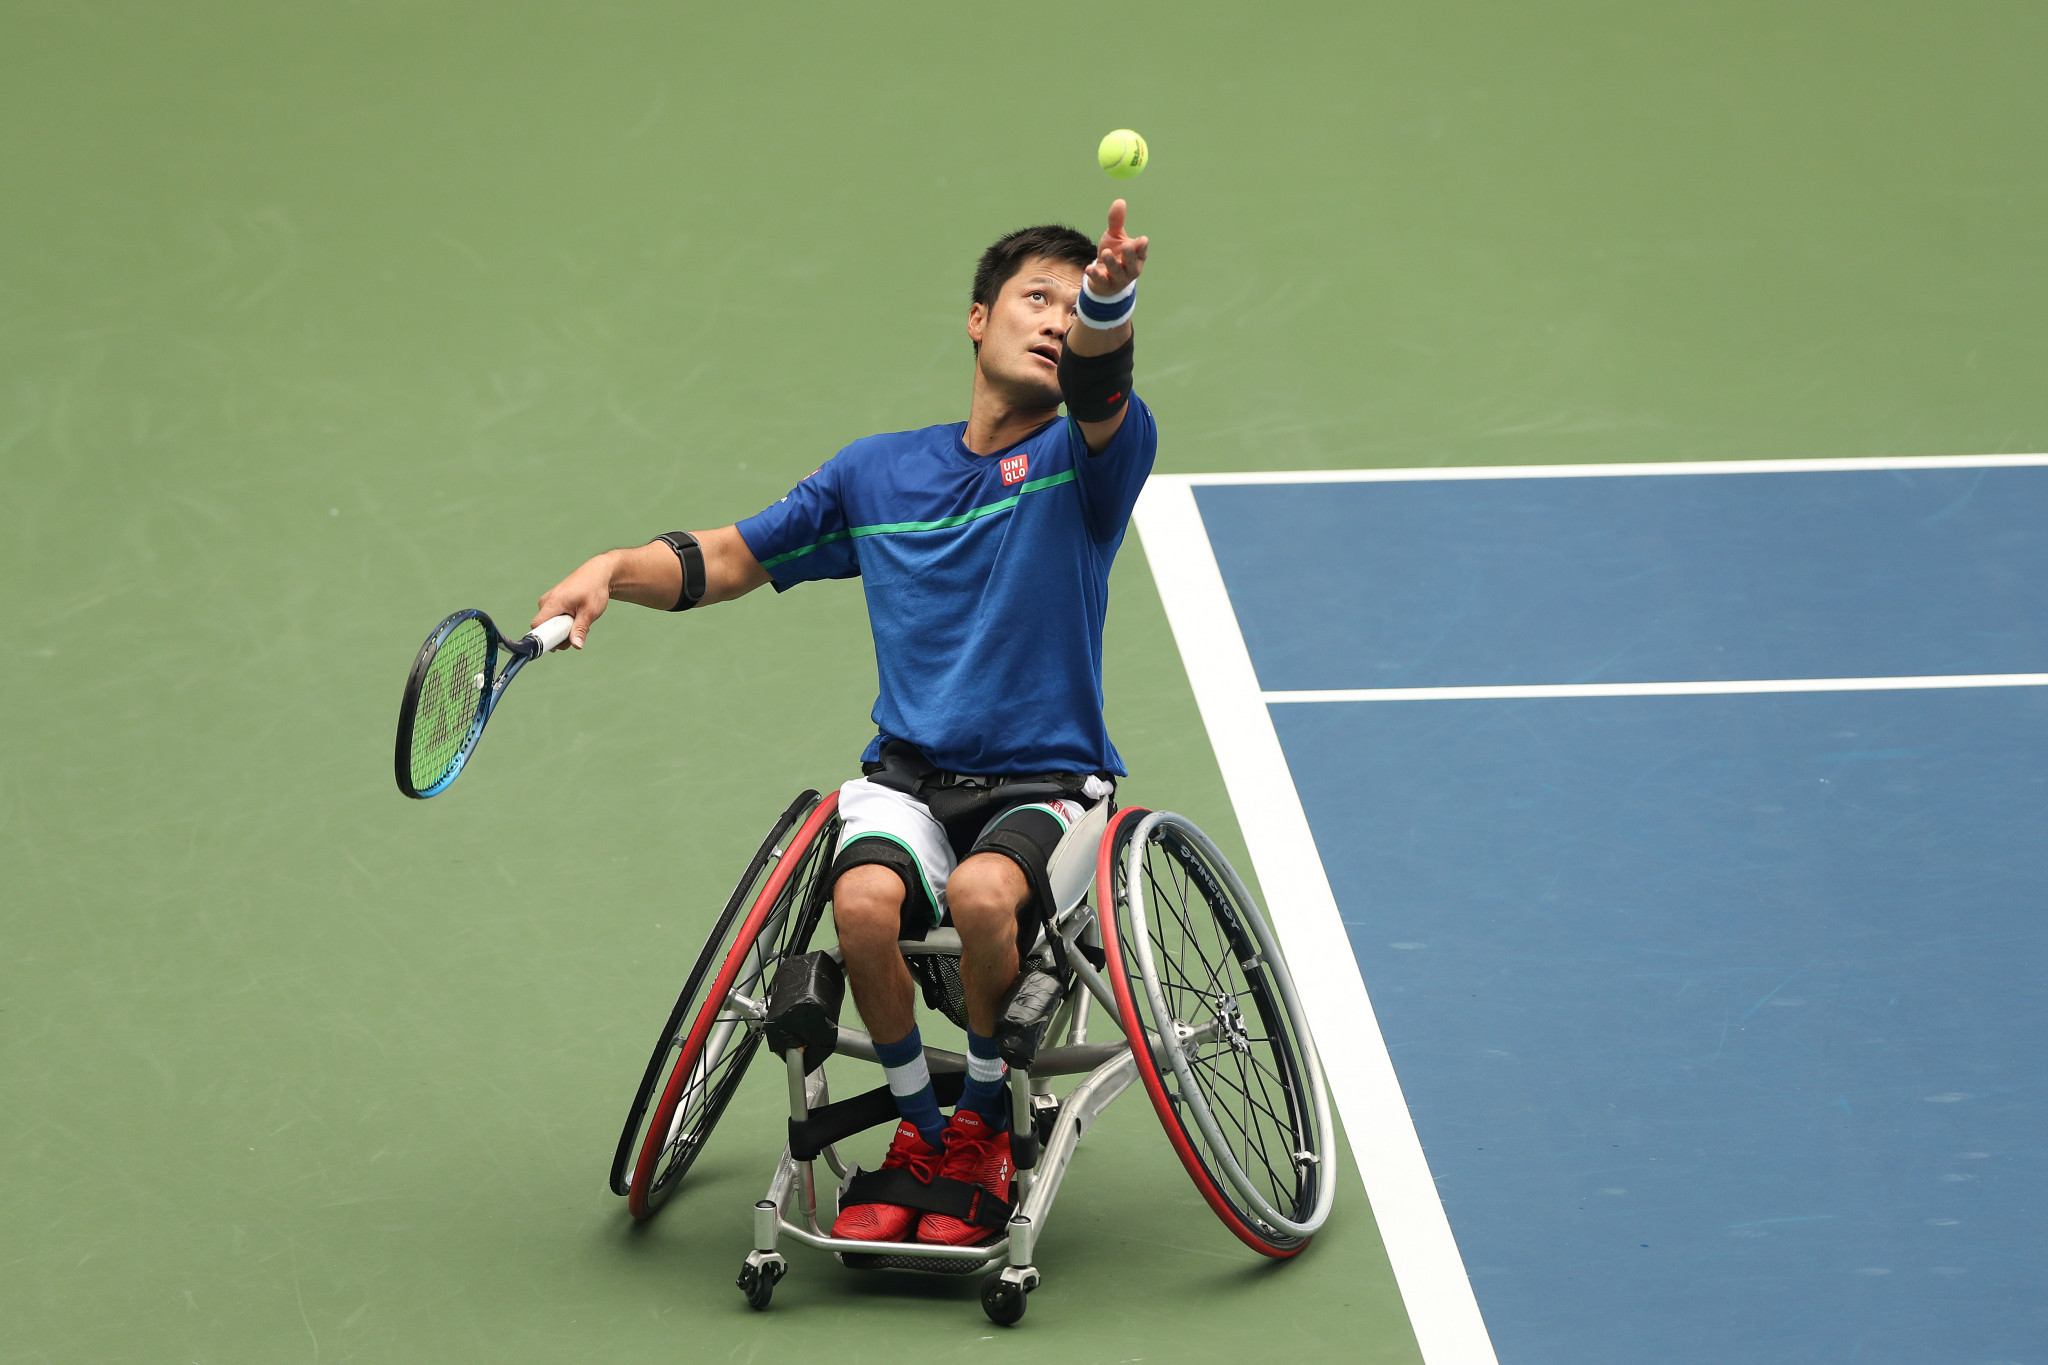 Shingo Kunieda is seeking a 25th Grand Slam singles title, and an 11th at the Australian Open  ©Getty Images